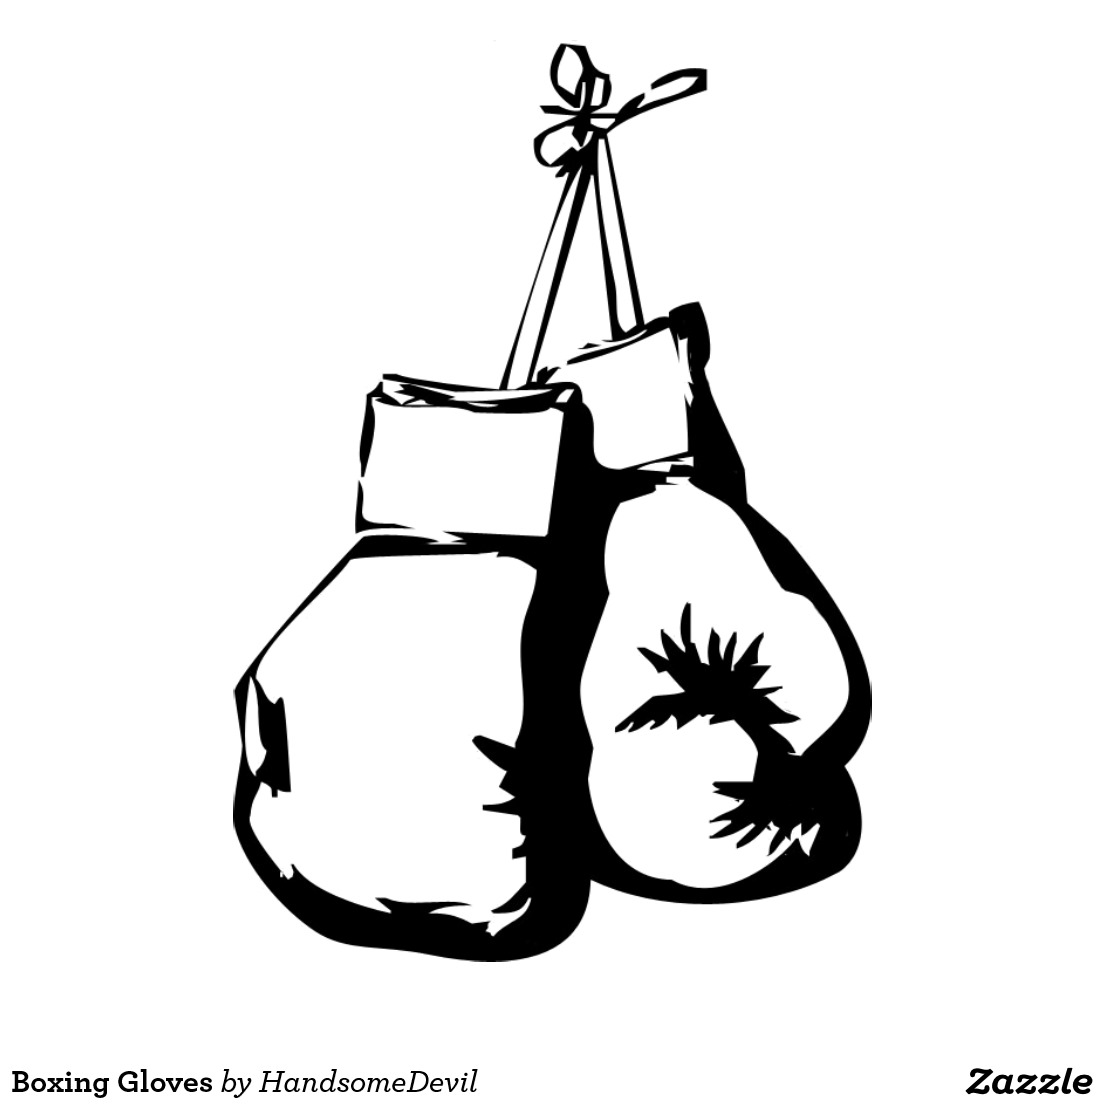 graphic royalty free stock Free download . Boxing gloves clipart black and white